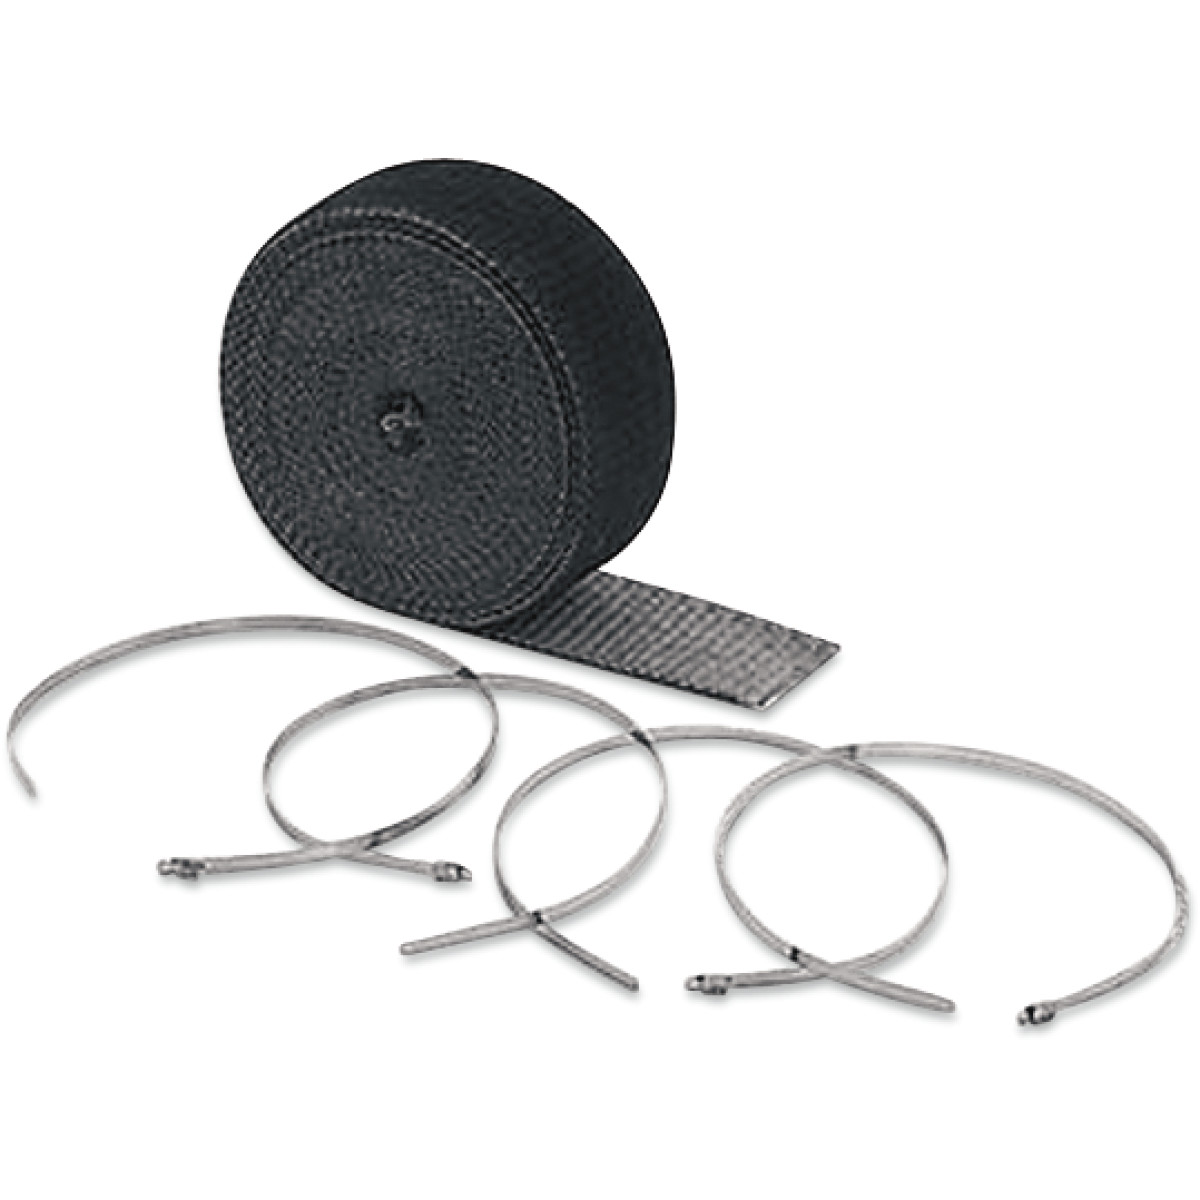 HARLEY DAVIDSON ACCEL EXHAUST HIGH-TEMPERATURE EXHAUST WRAP KITS